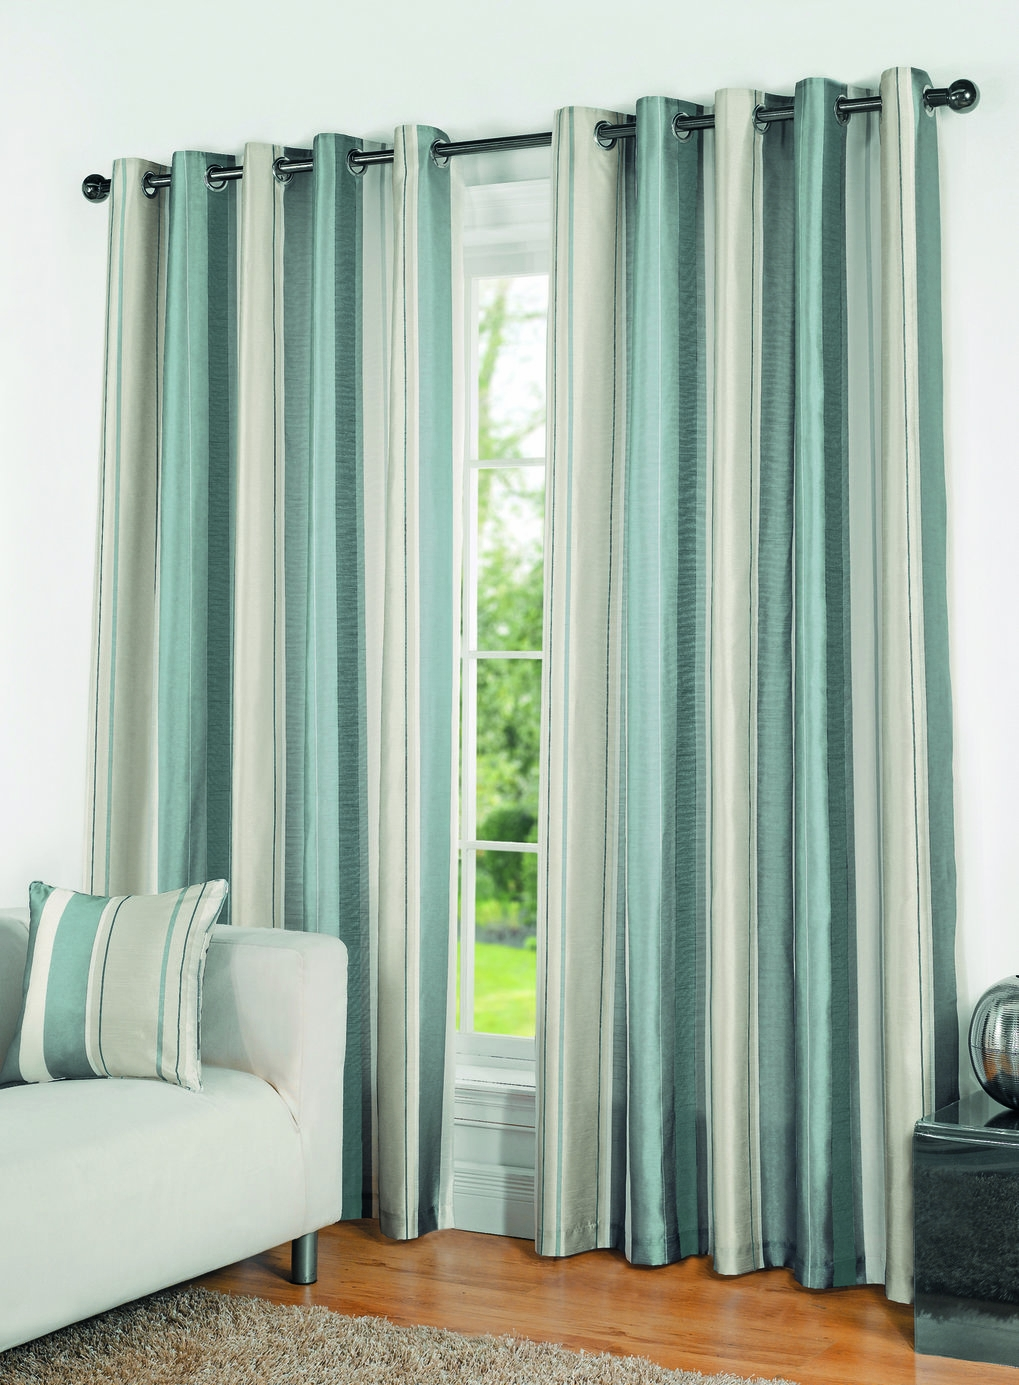 Duck Egg Casa Stripe Curtains Bhs Home Decor Pinterest For Duck Egg Blue Striped Curtains (Image 7 of 15)